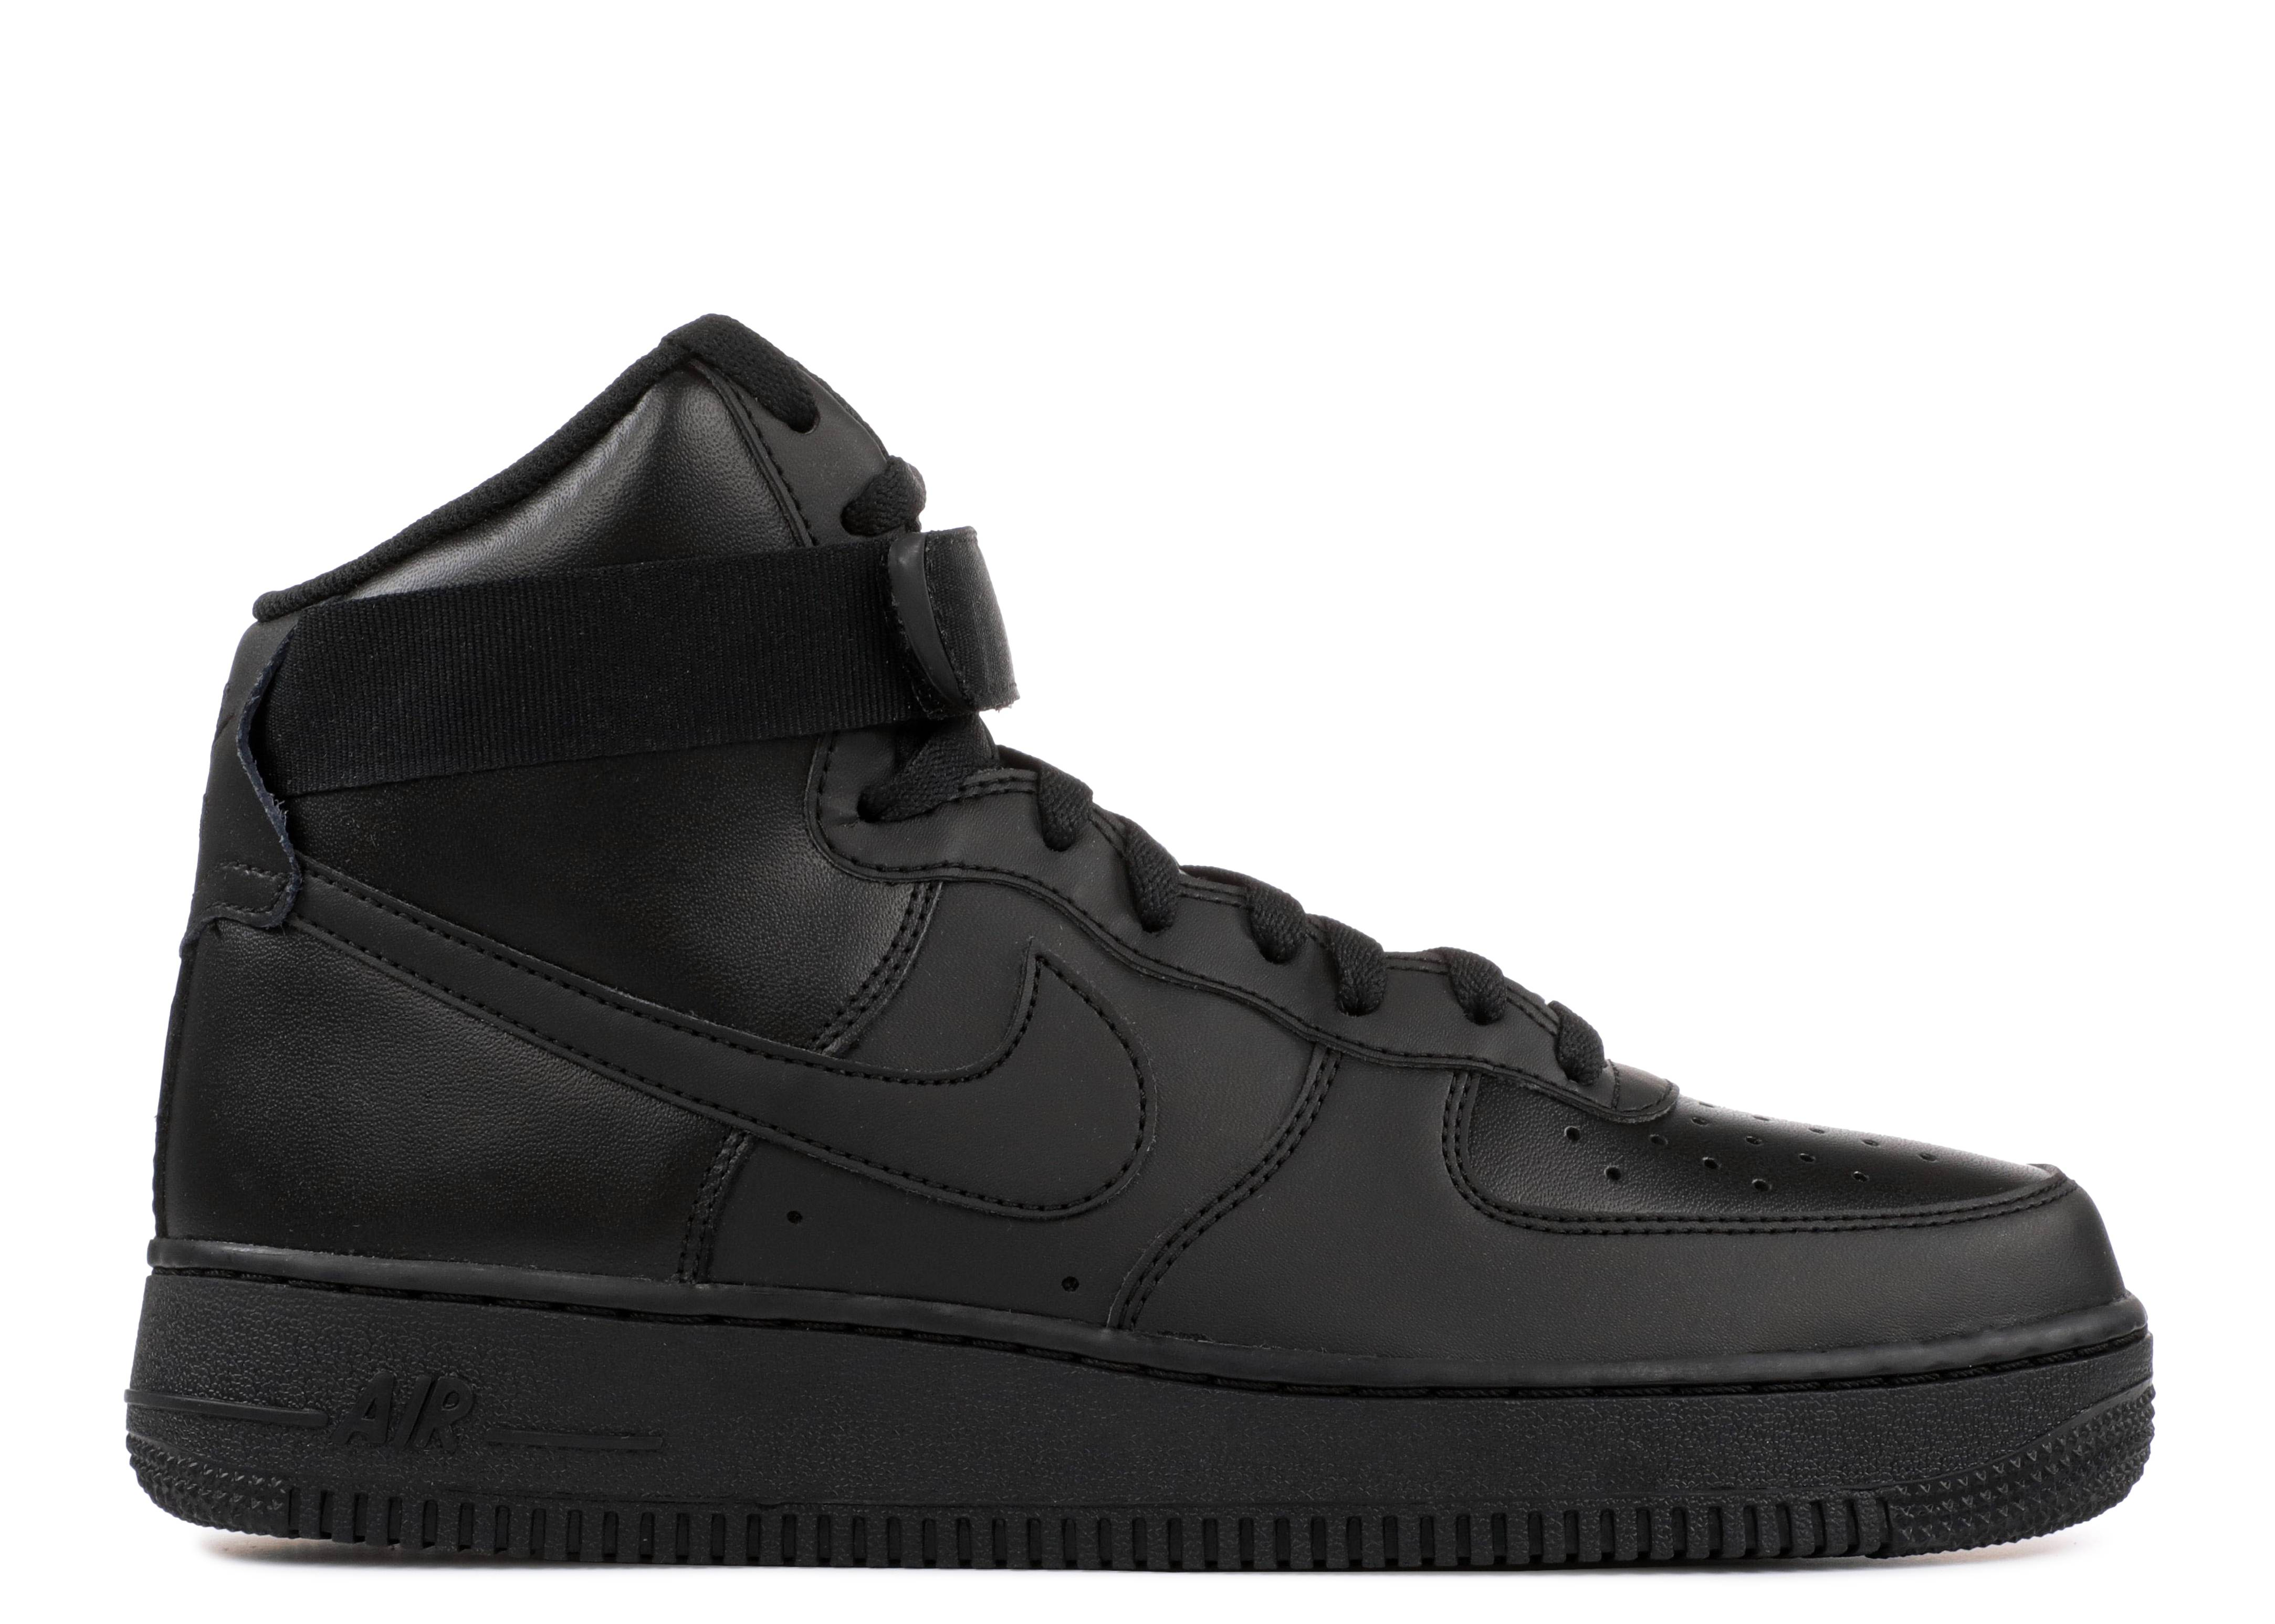 817d9a36912743 Air Force 1 High - Nike Air Force - Nike